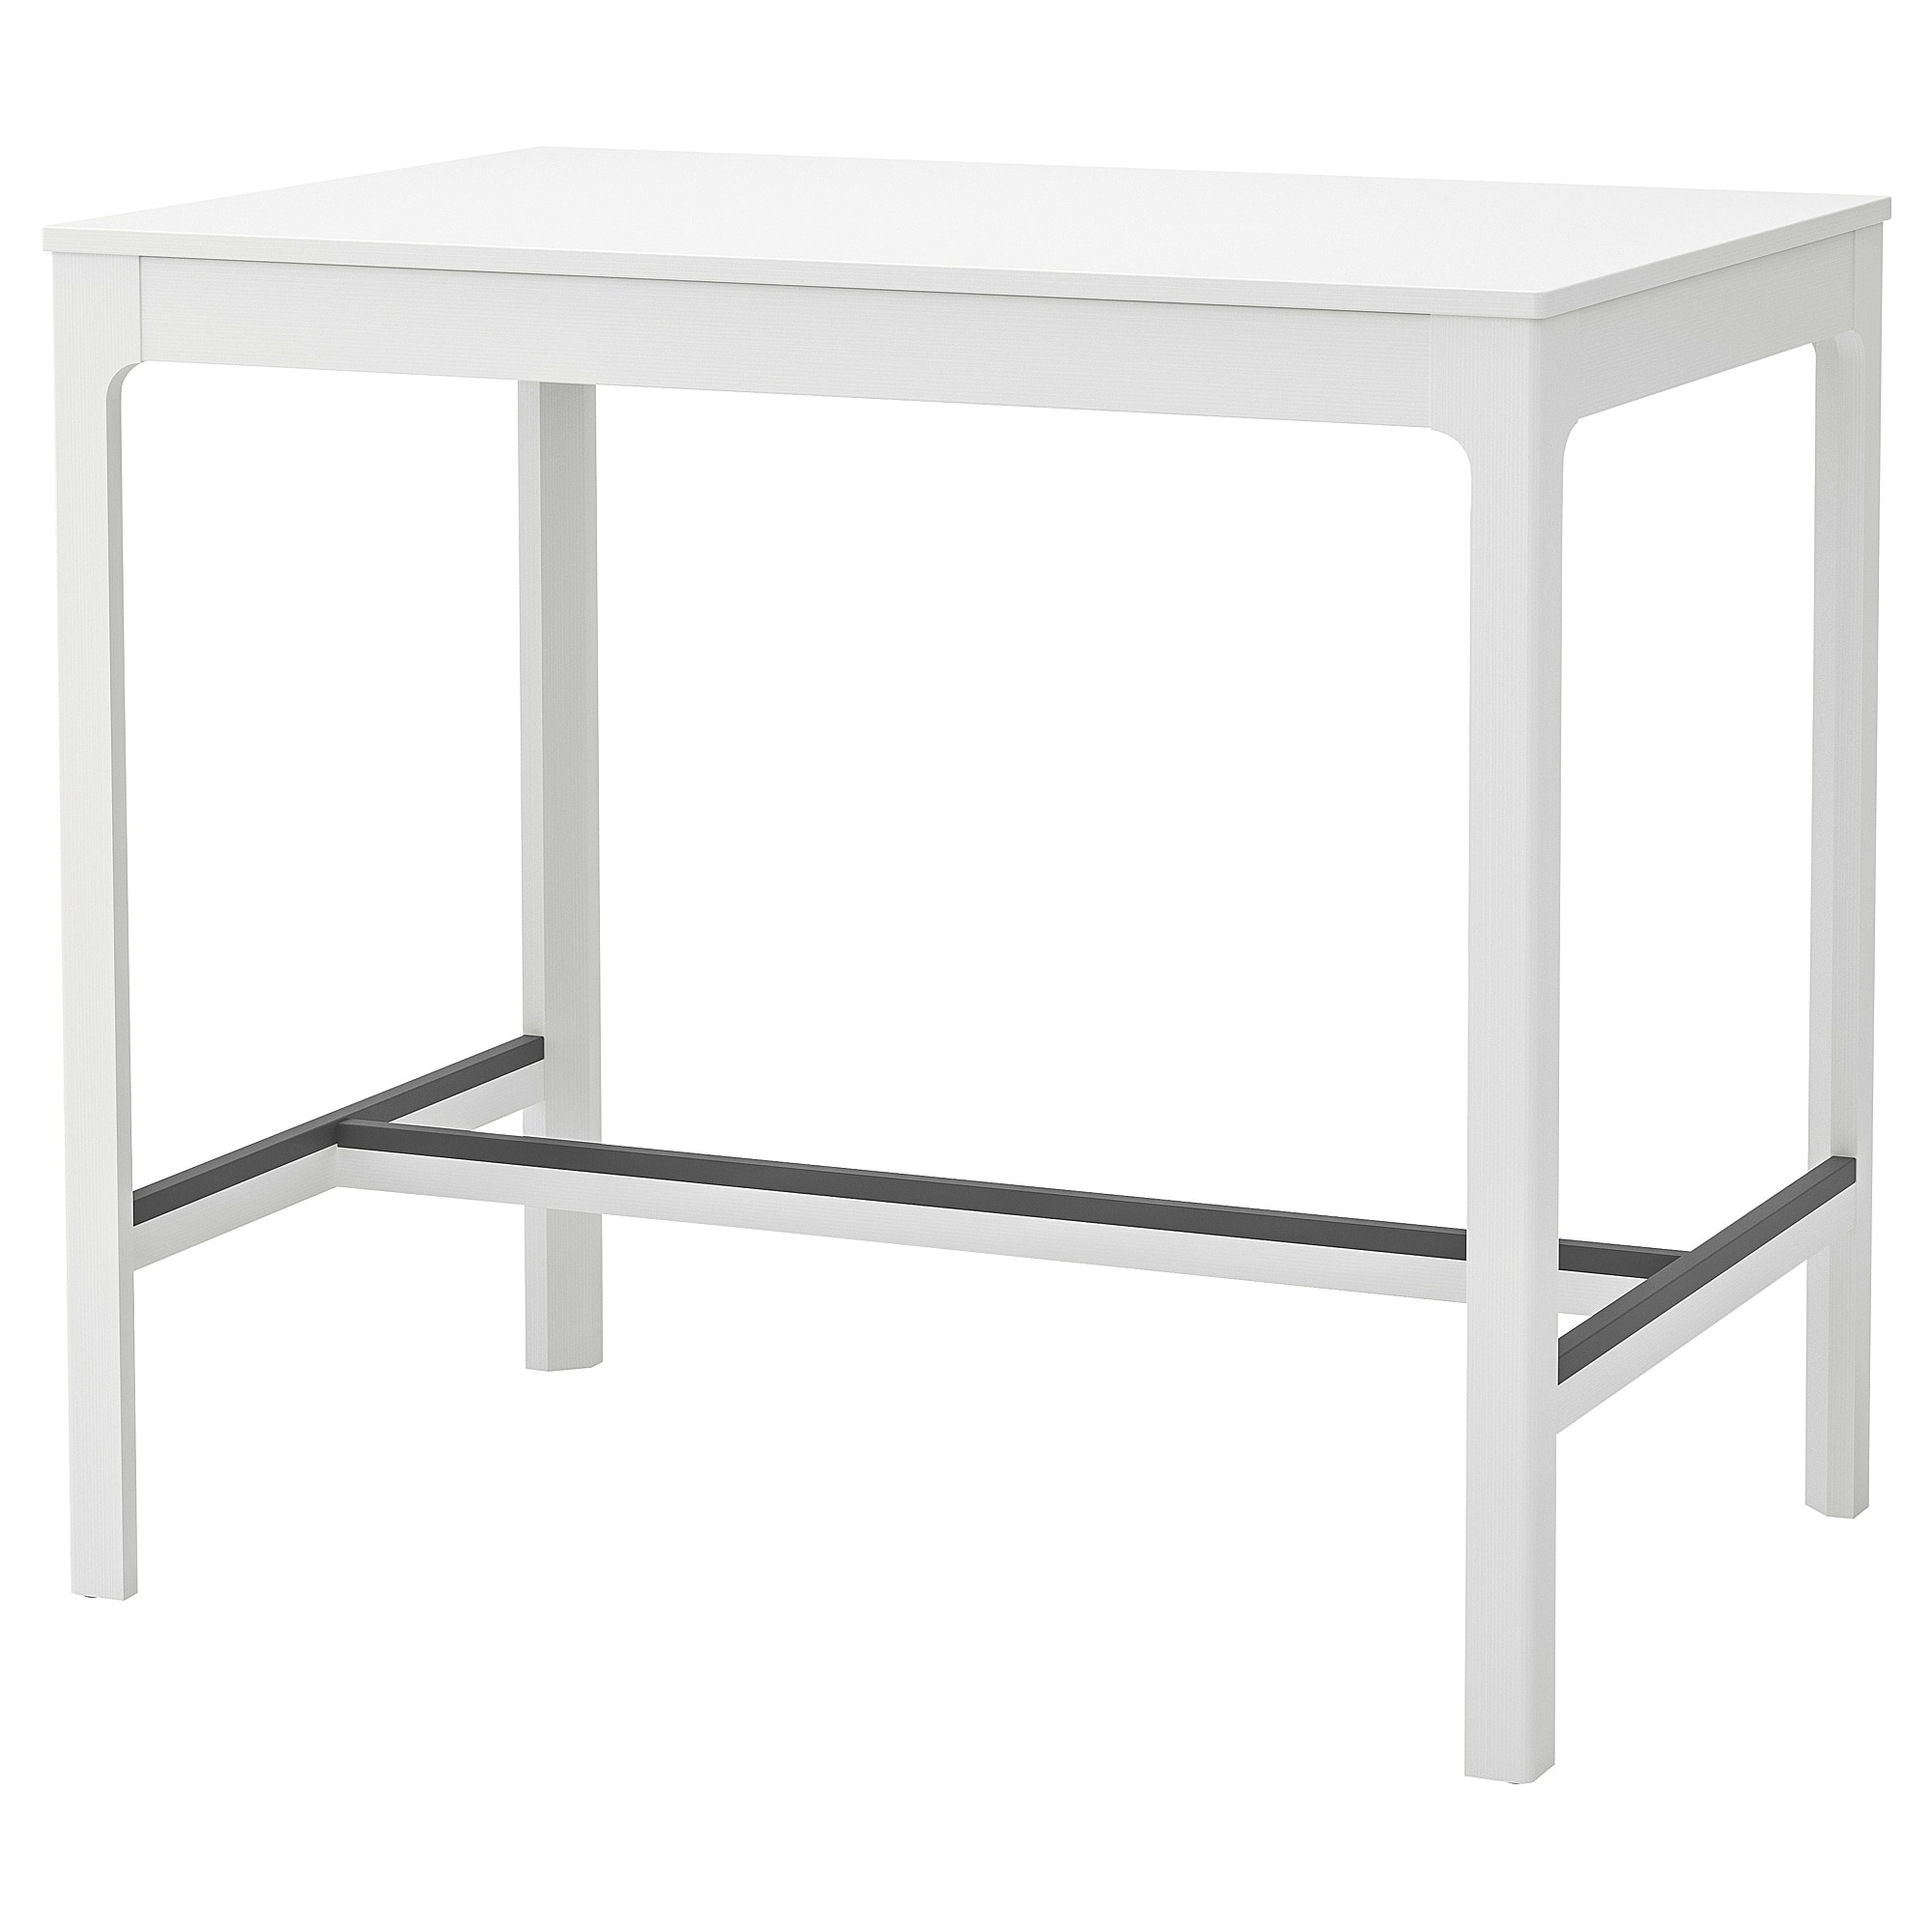 Ekedalen Bar Table White 47 1 4x31 1 2 White Bar Table Bar